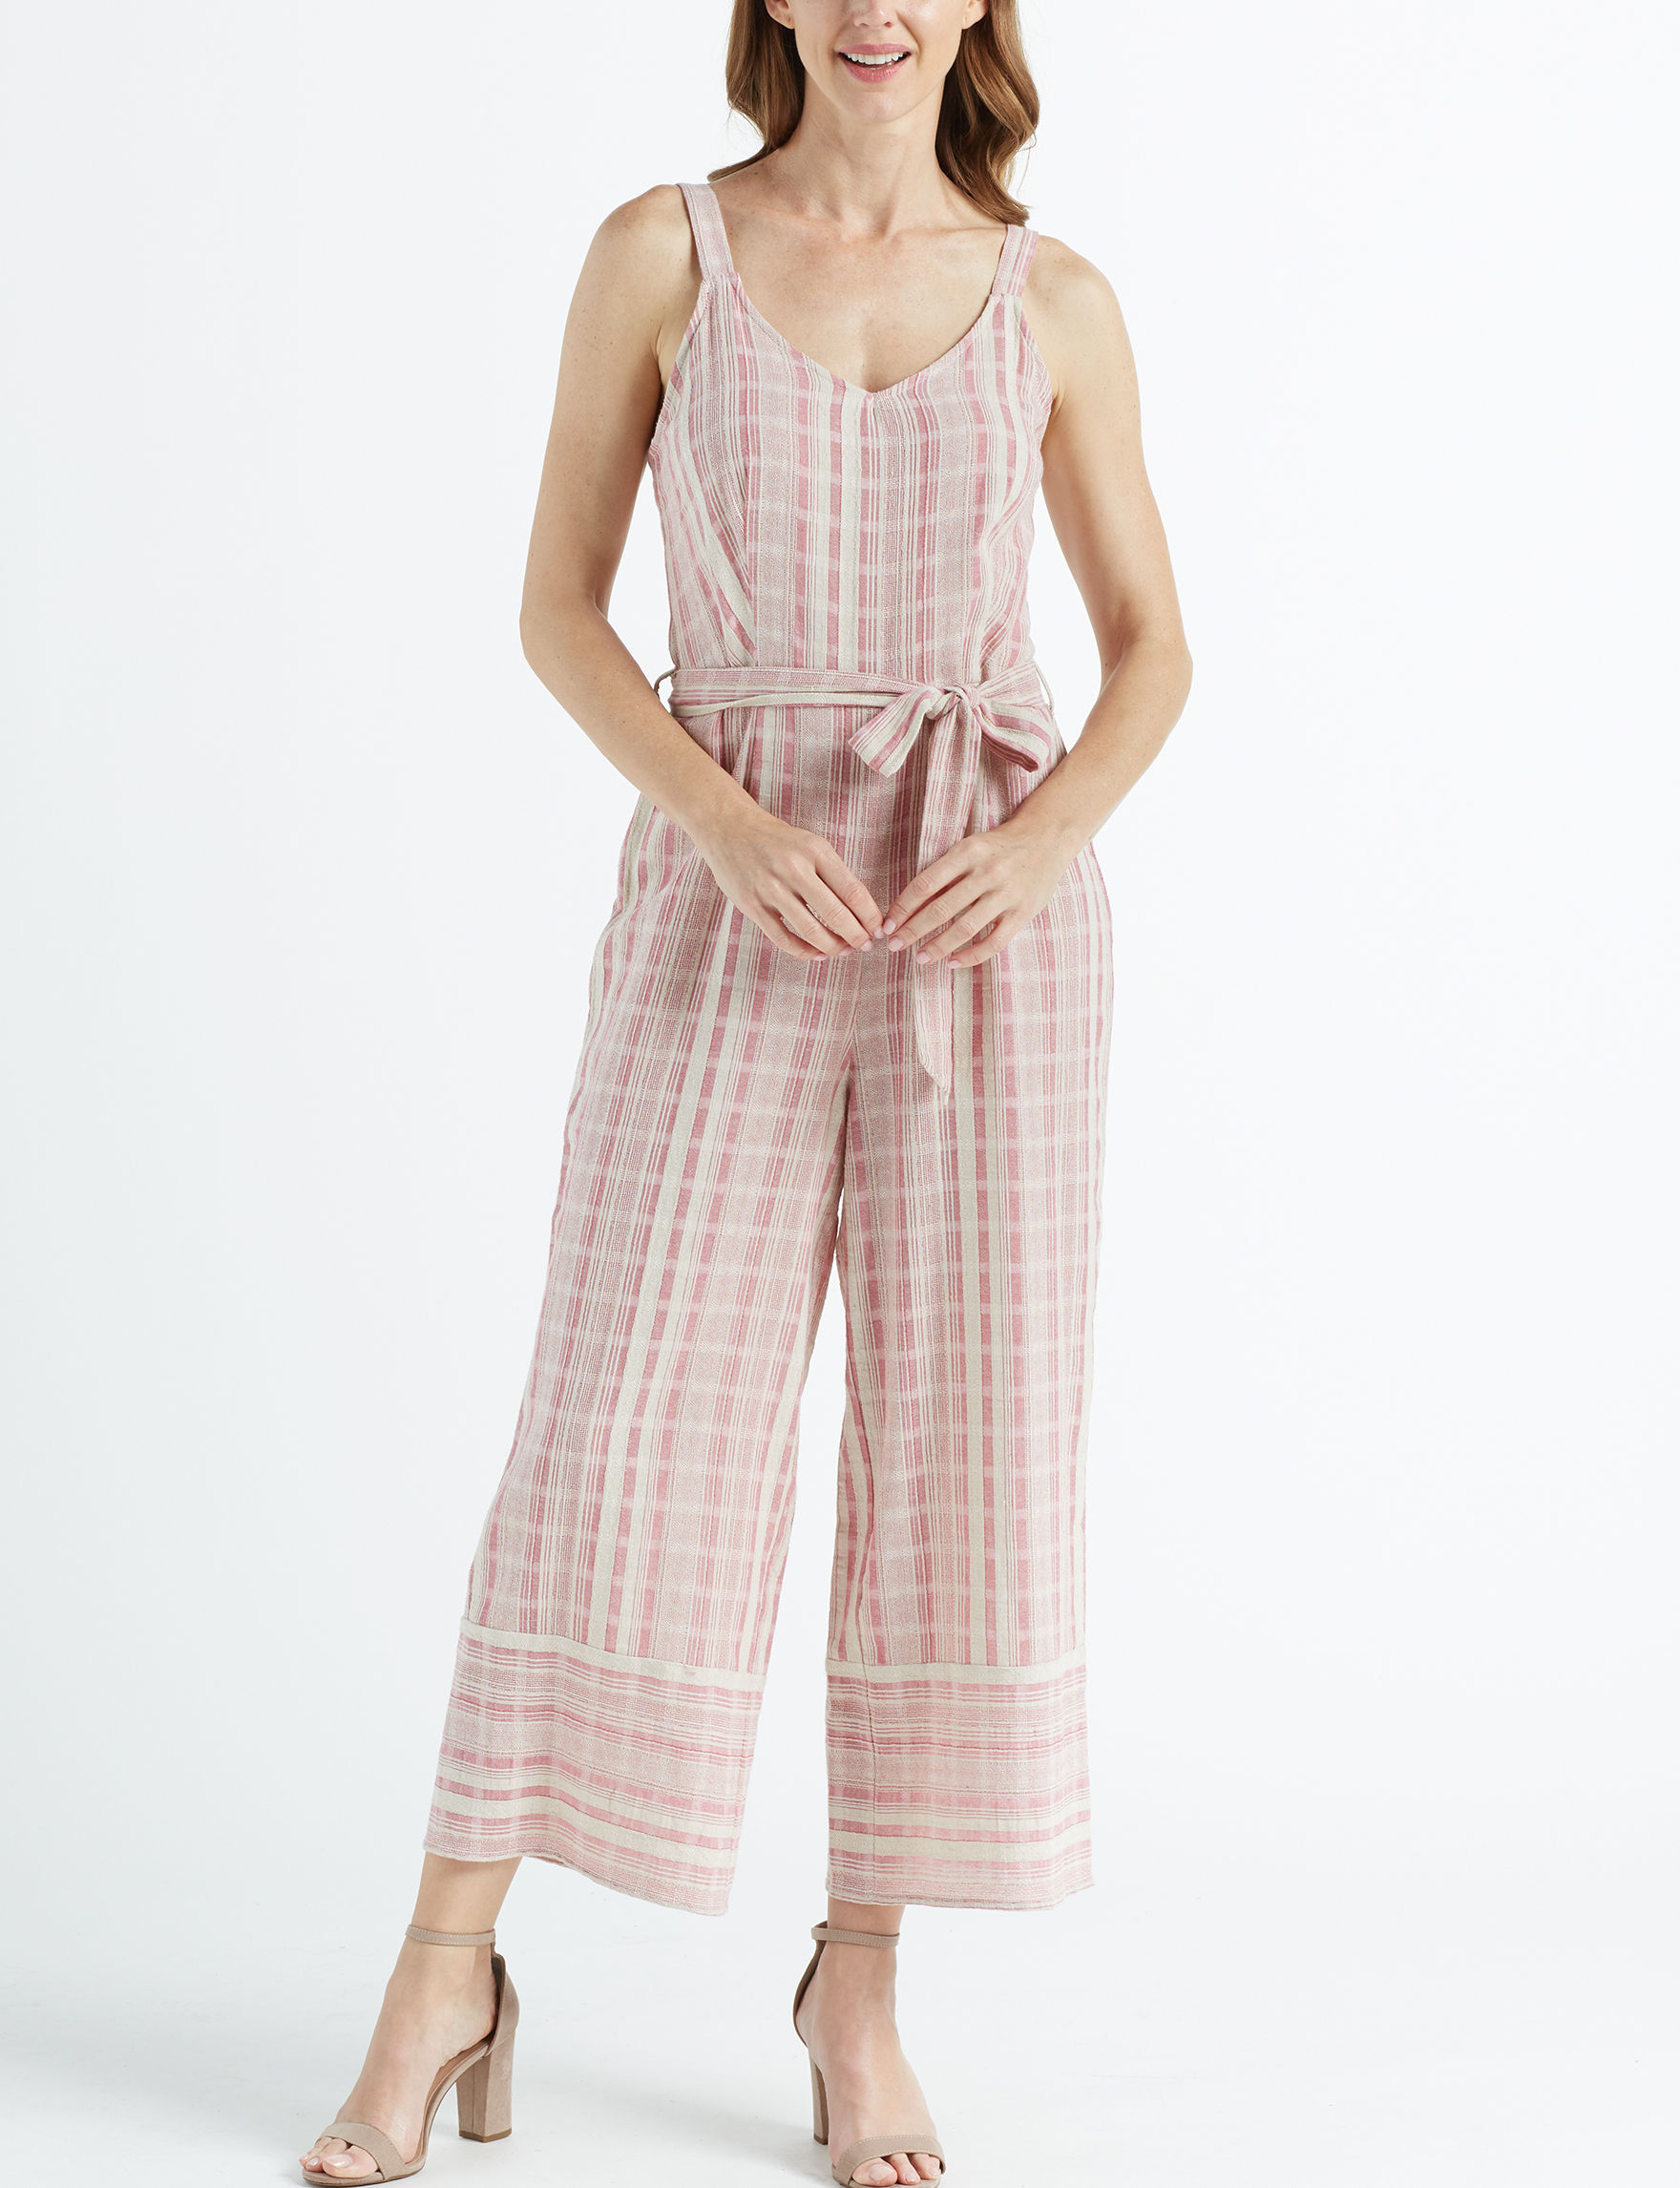 Sharagano Pink Stripe Everyday & Casual Fit & Flare Dresses